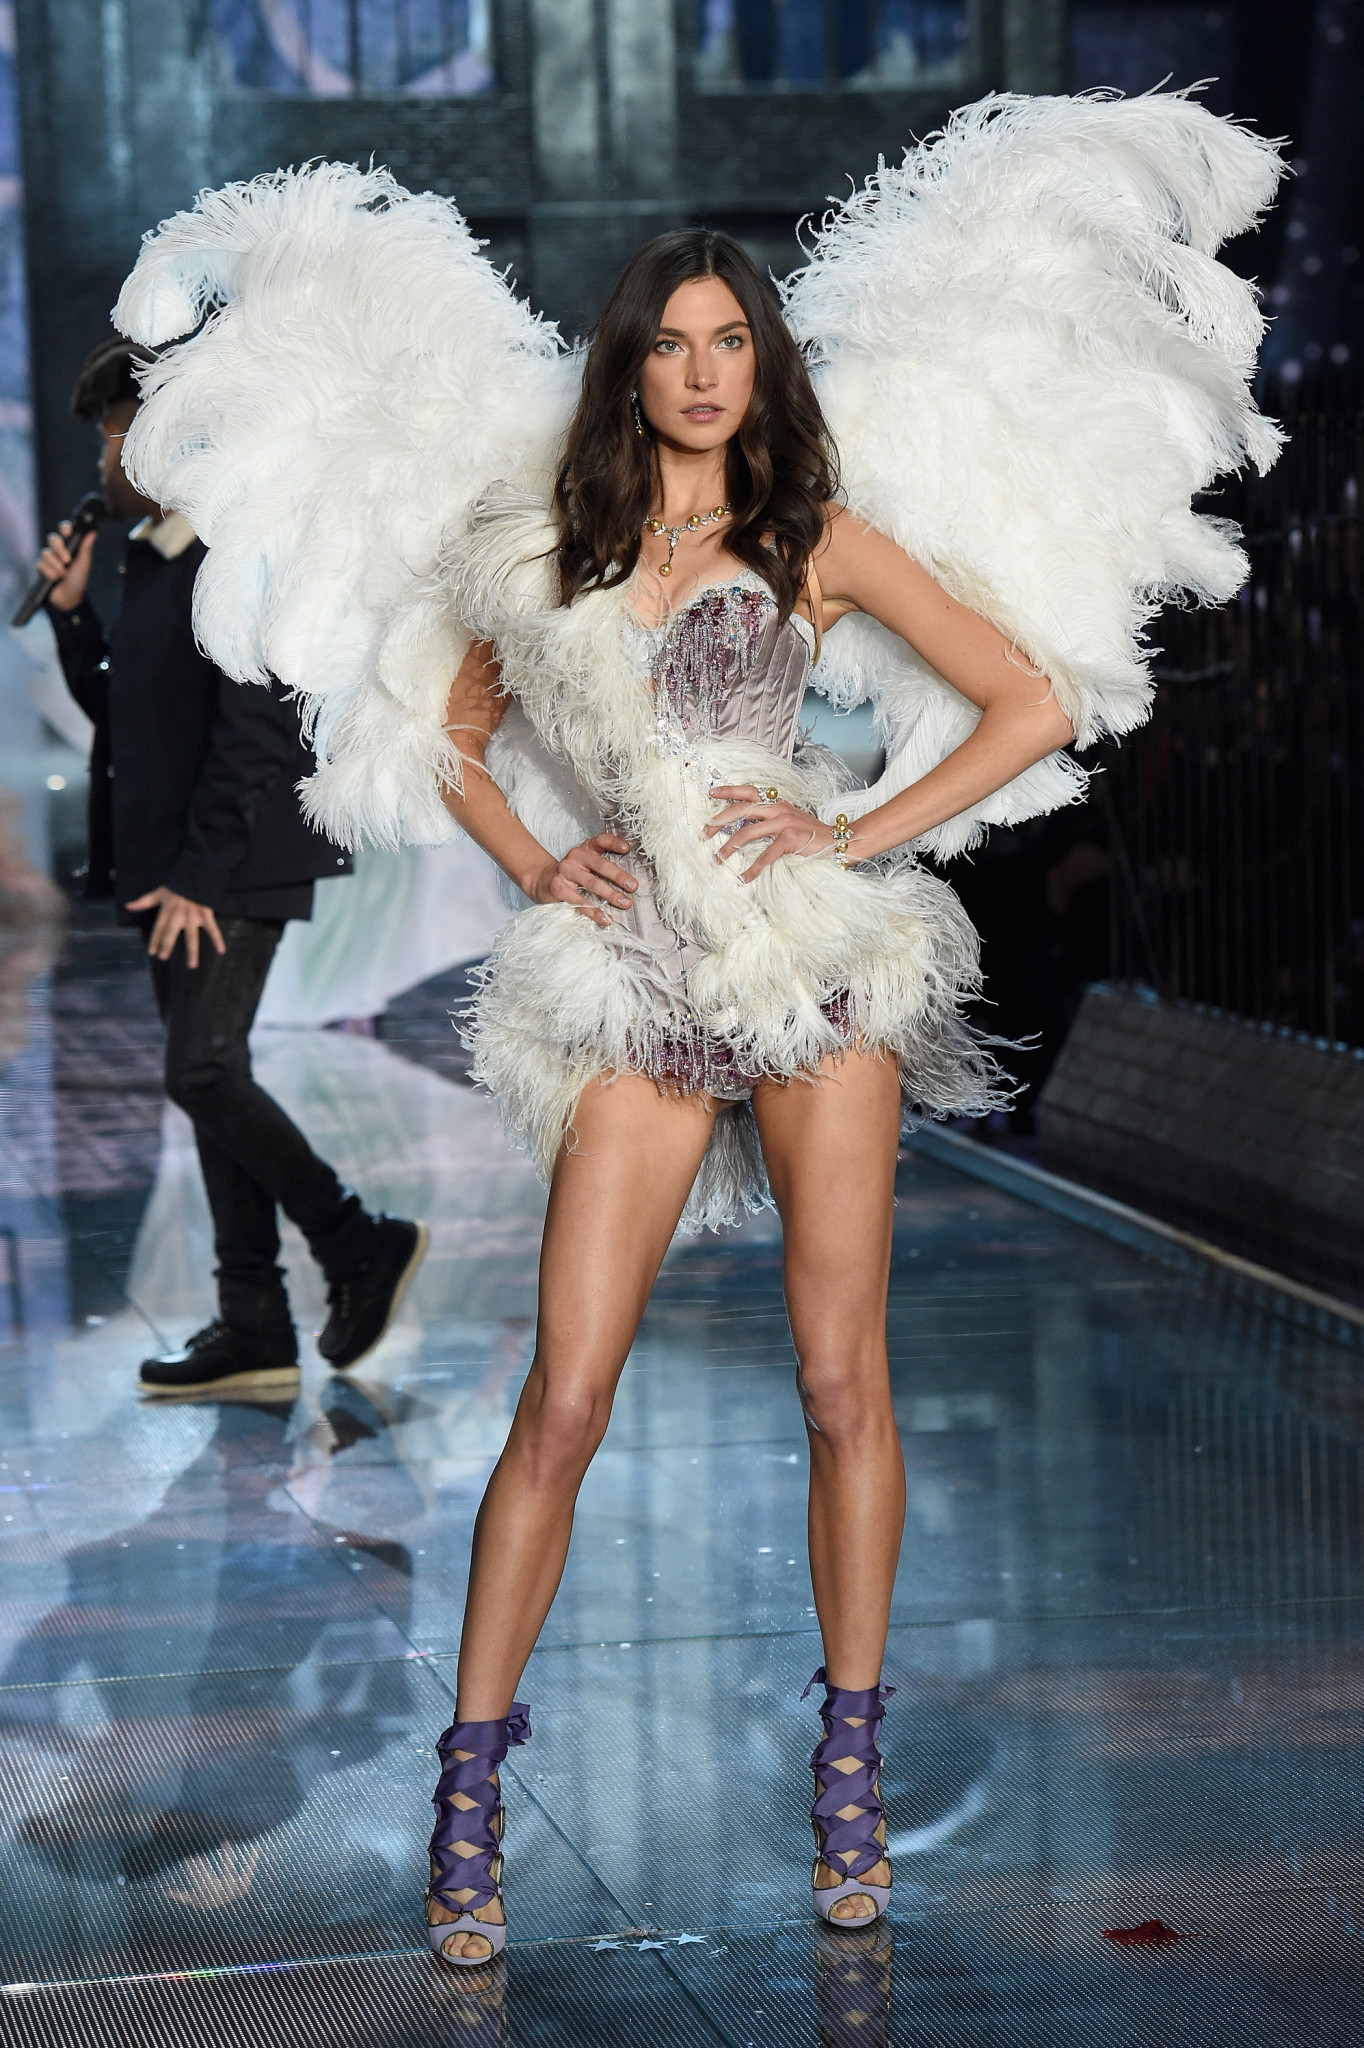 NEW YORK, NY - NOVEMBER 10: Model Jacqueline Jablonski walks the runway during the 2015 Victoria's Secret Fashion Show at Lexington Avenue Armory on November 10, 2015 in New York City.